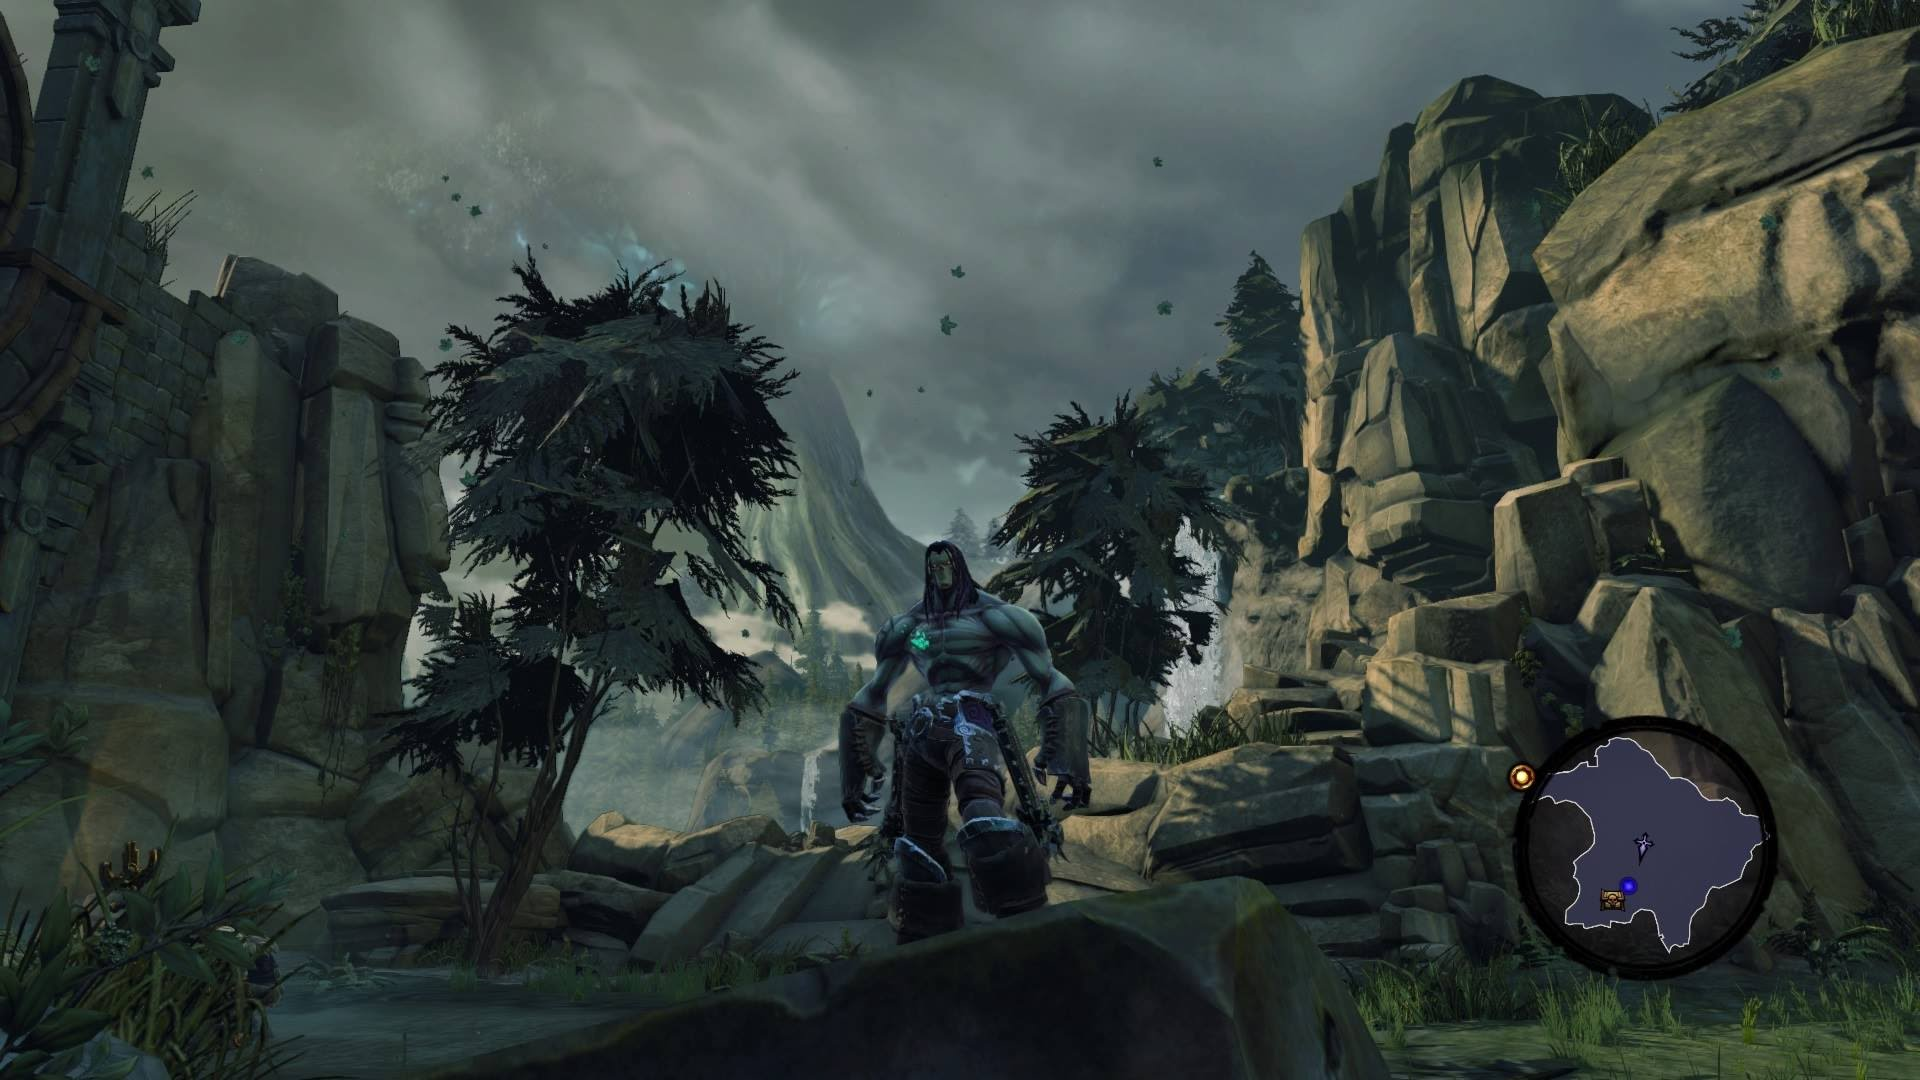 Buy Darksiders II Deathinitive Edition (Steam Gift/RuCiS) and download